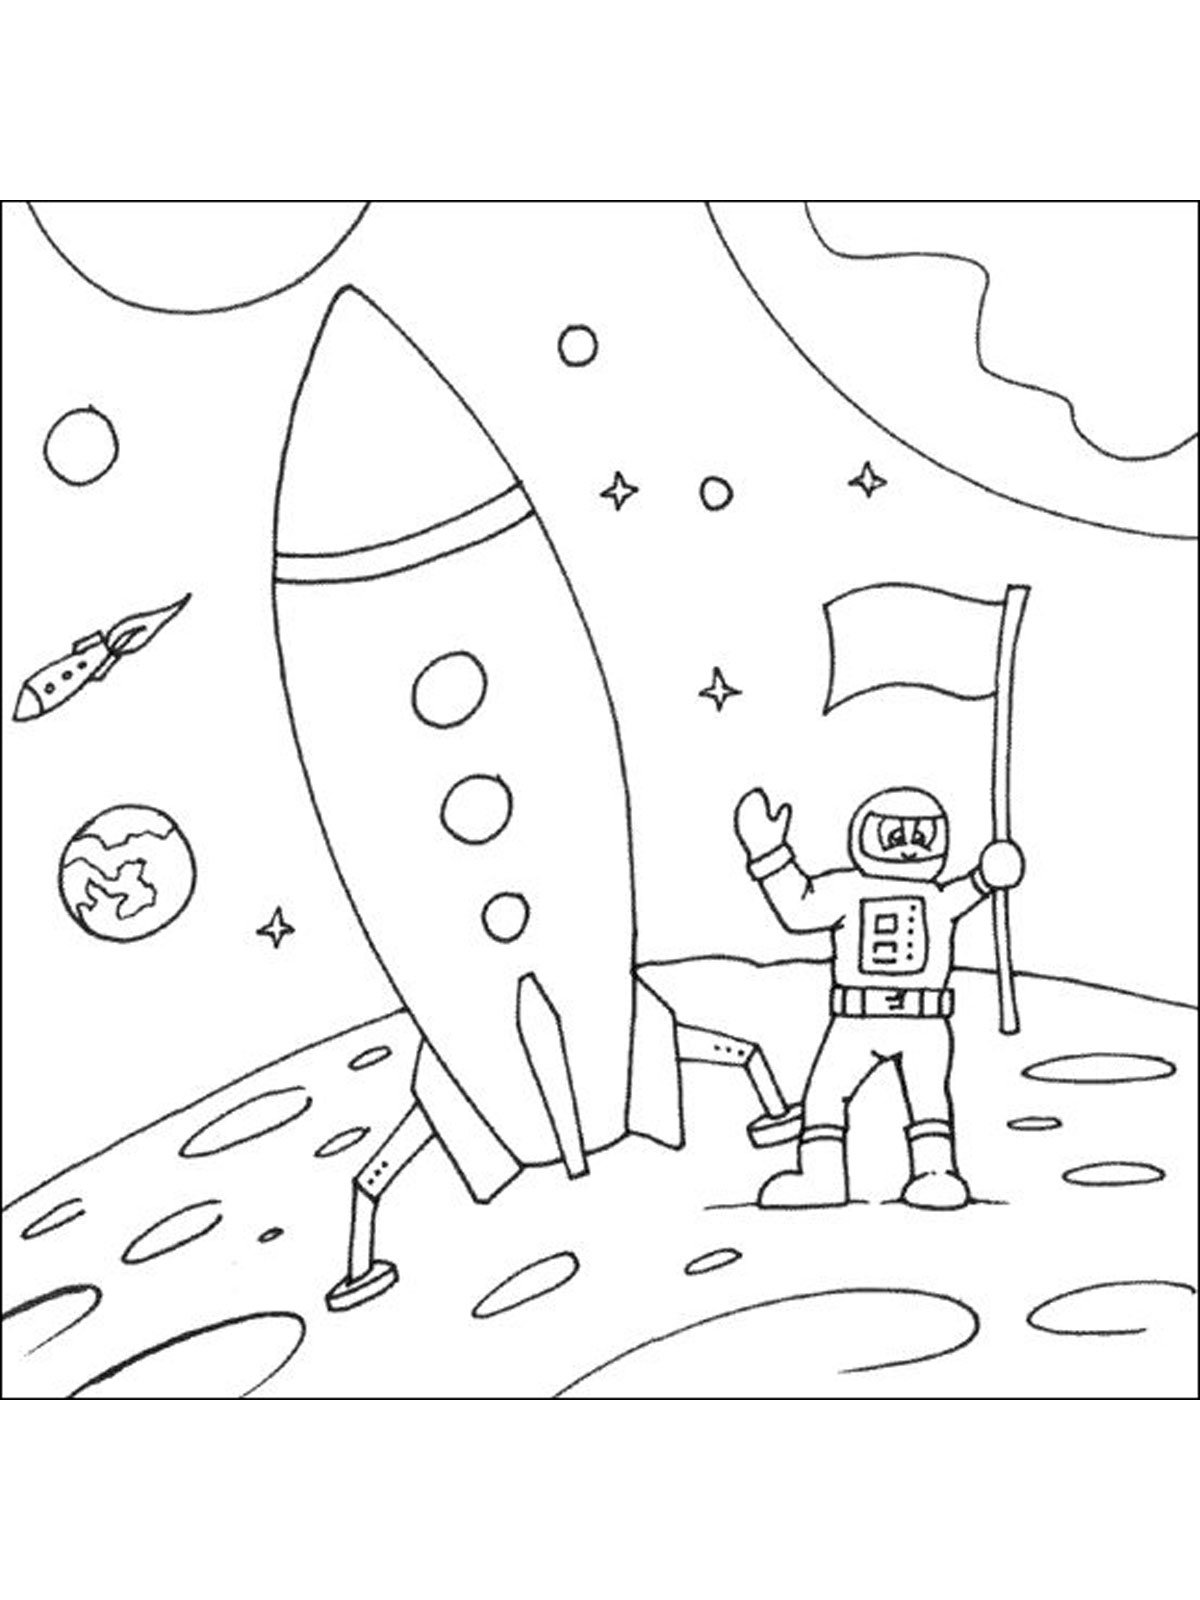 space rocket coloring pages - HD 1200×1600